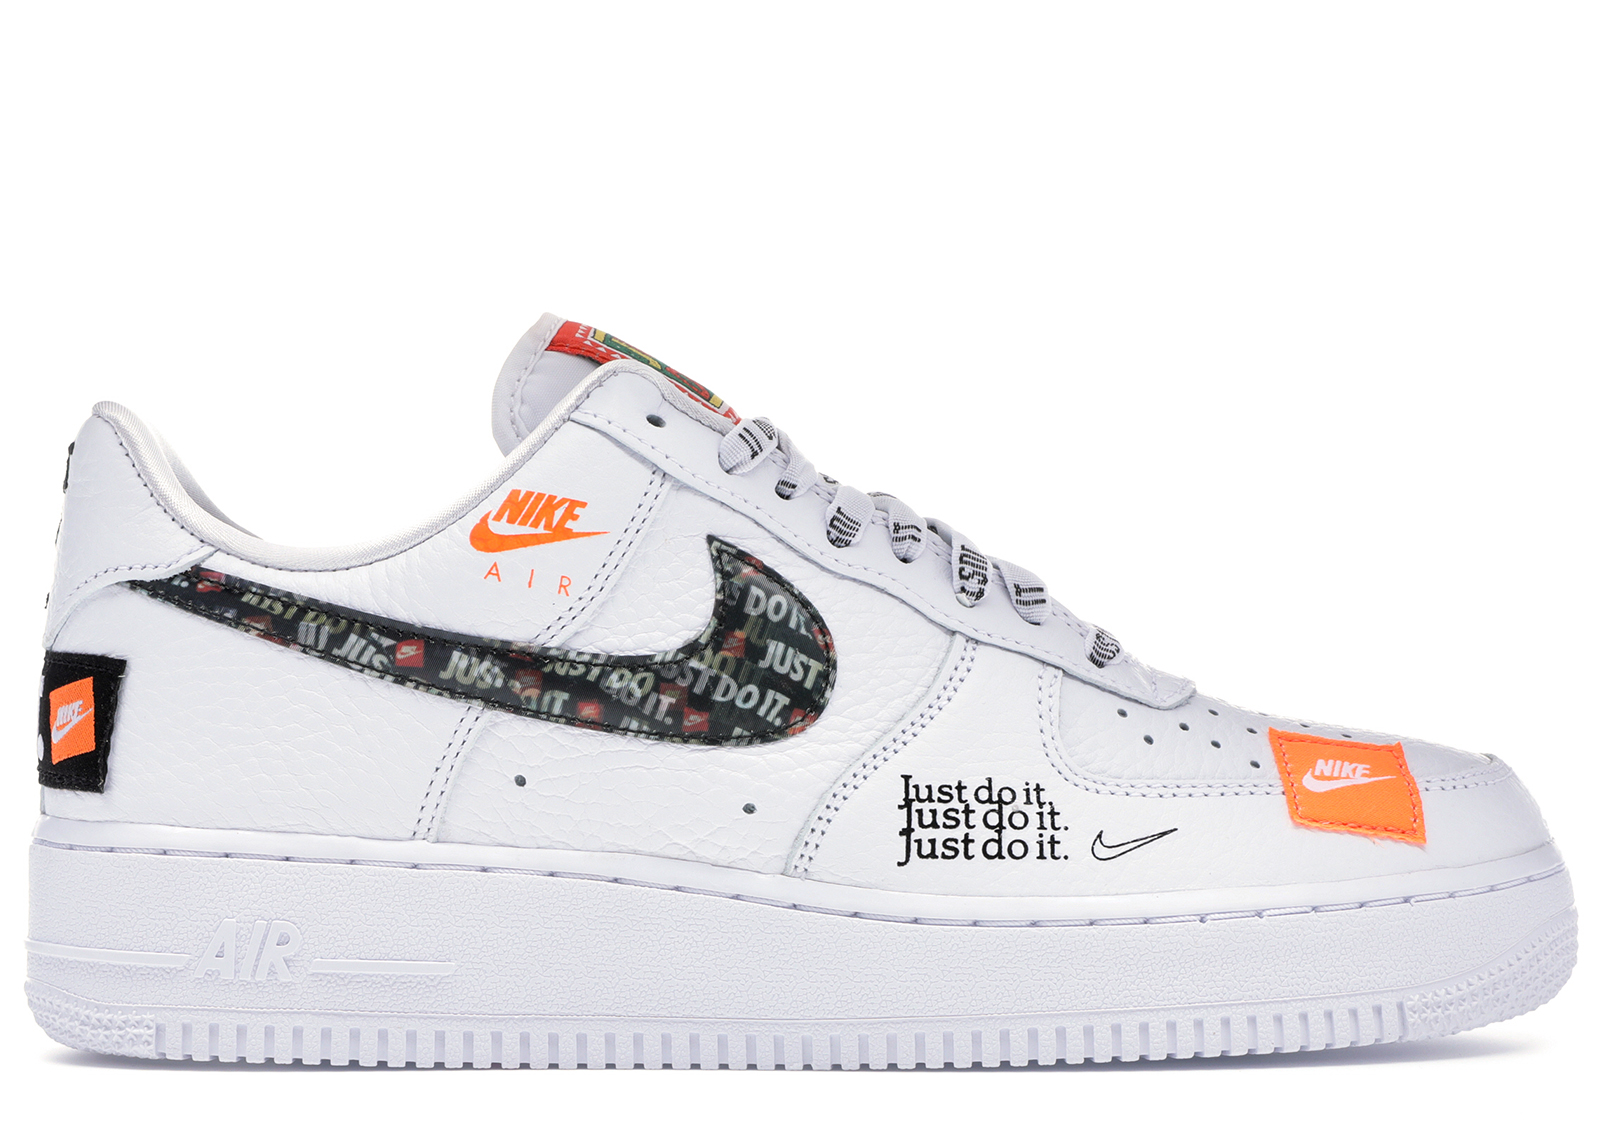 nike air force 1 just do it white donna